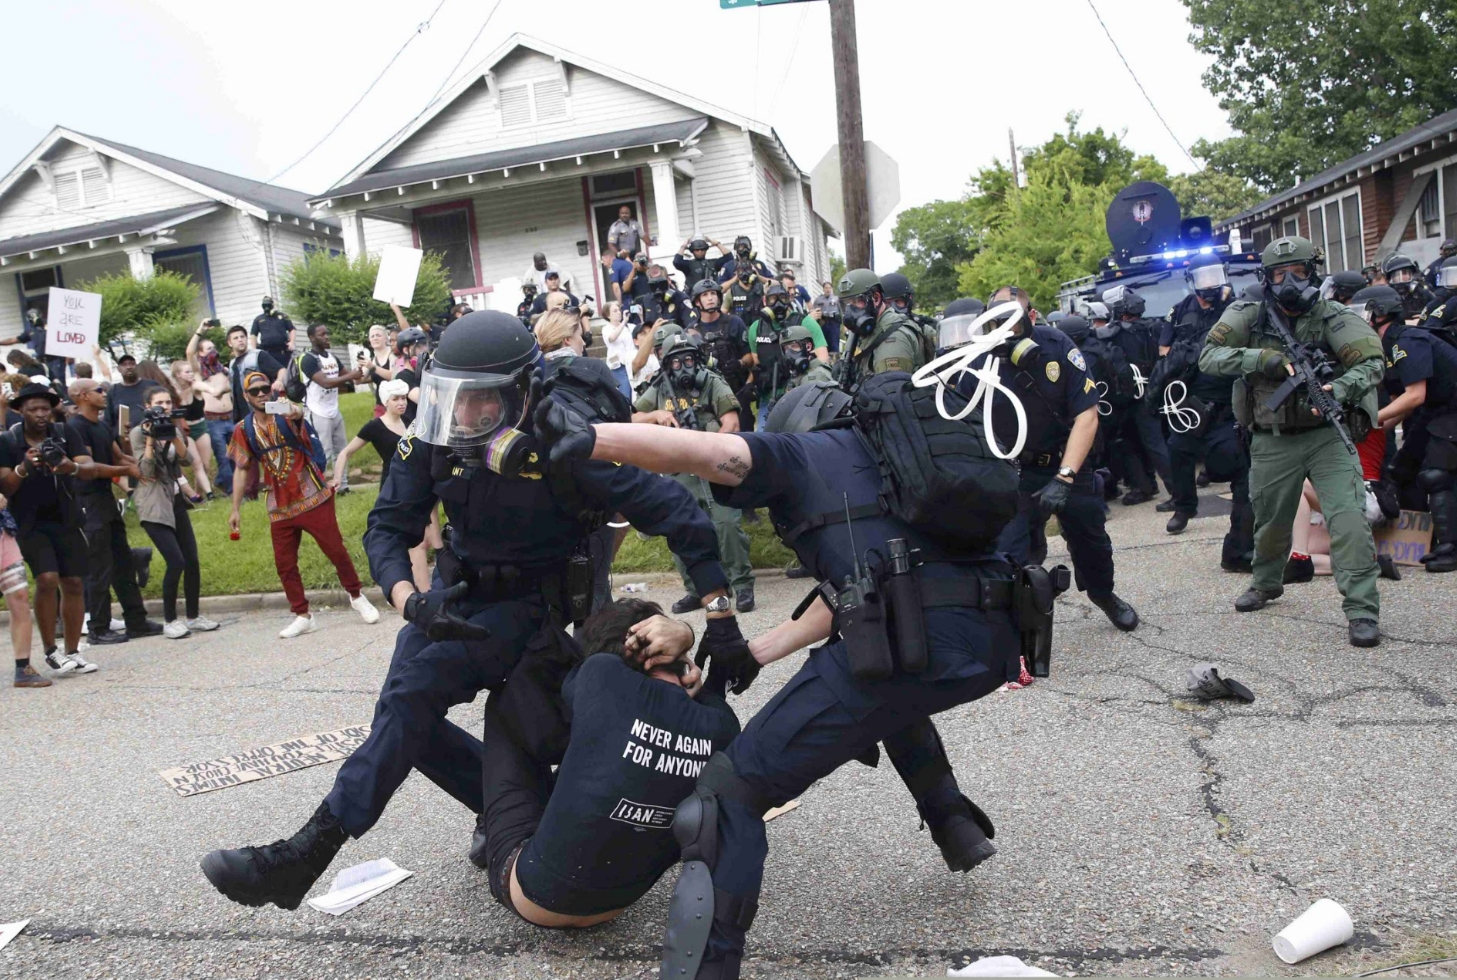 Police scuffle with a demonstrator as they try to apprehend him during a rally in Baton Rouge, Louisiana July 10th. Image-Reuters/Shannon Stapleton